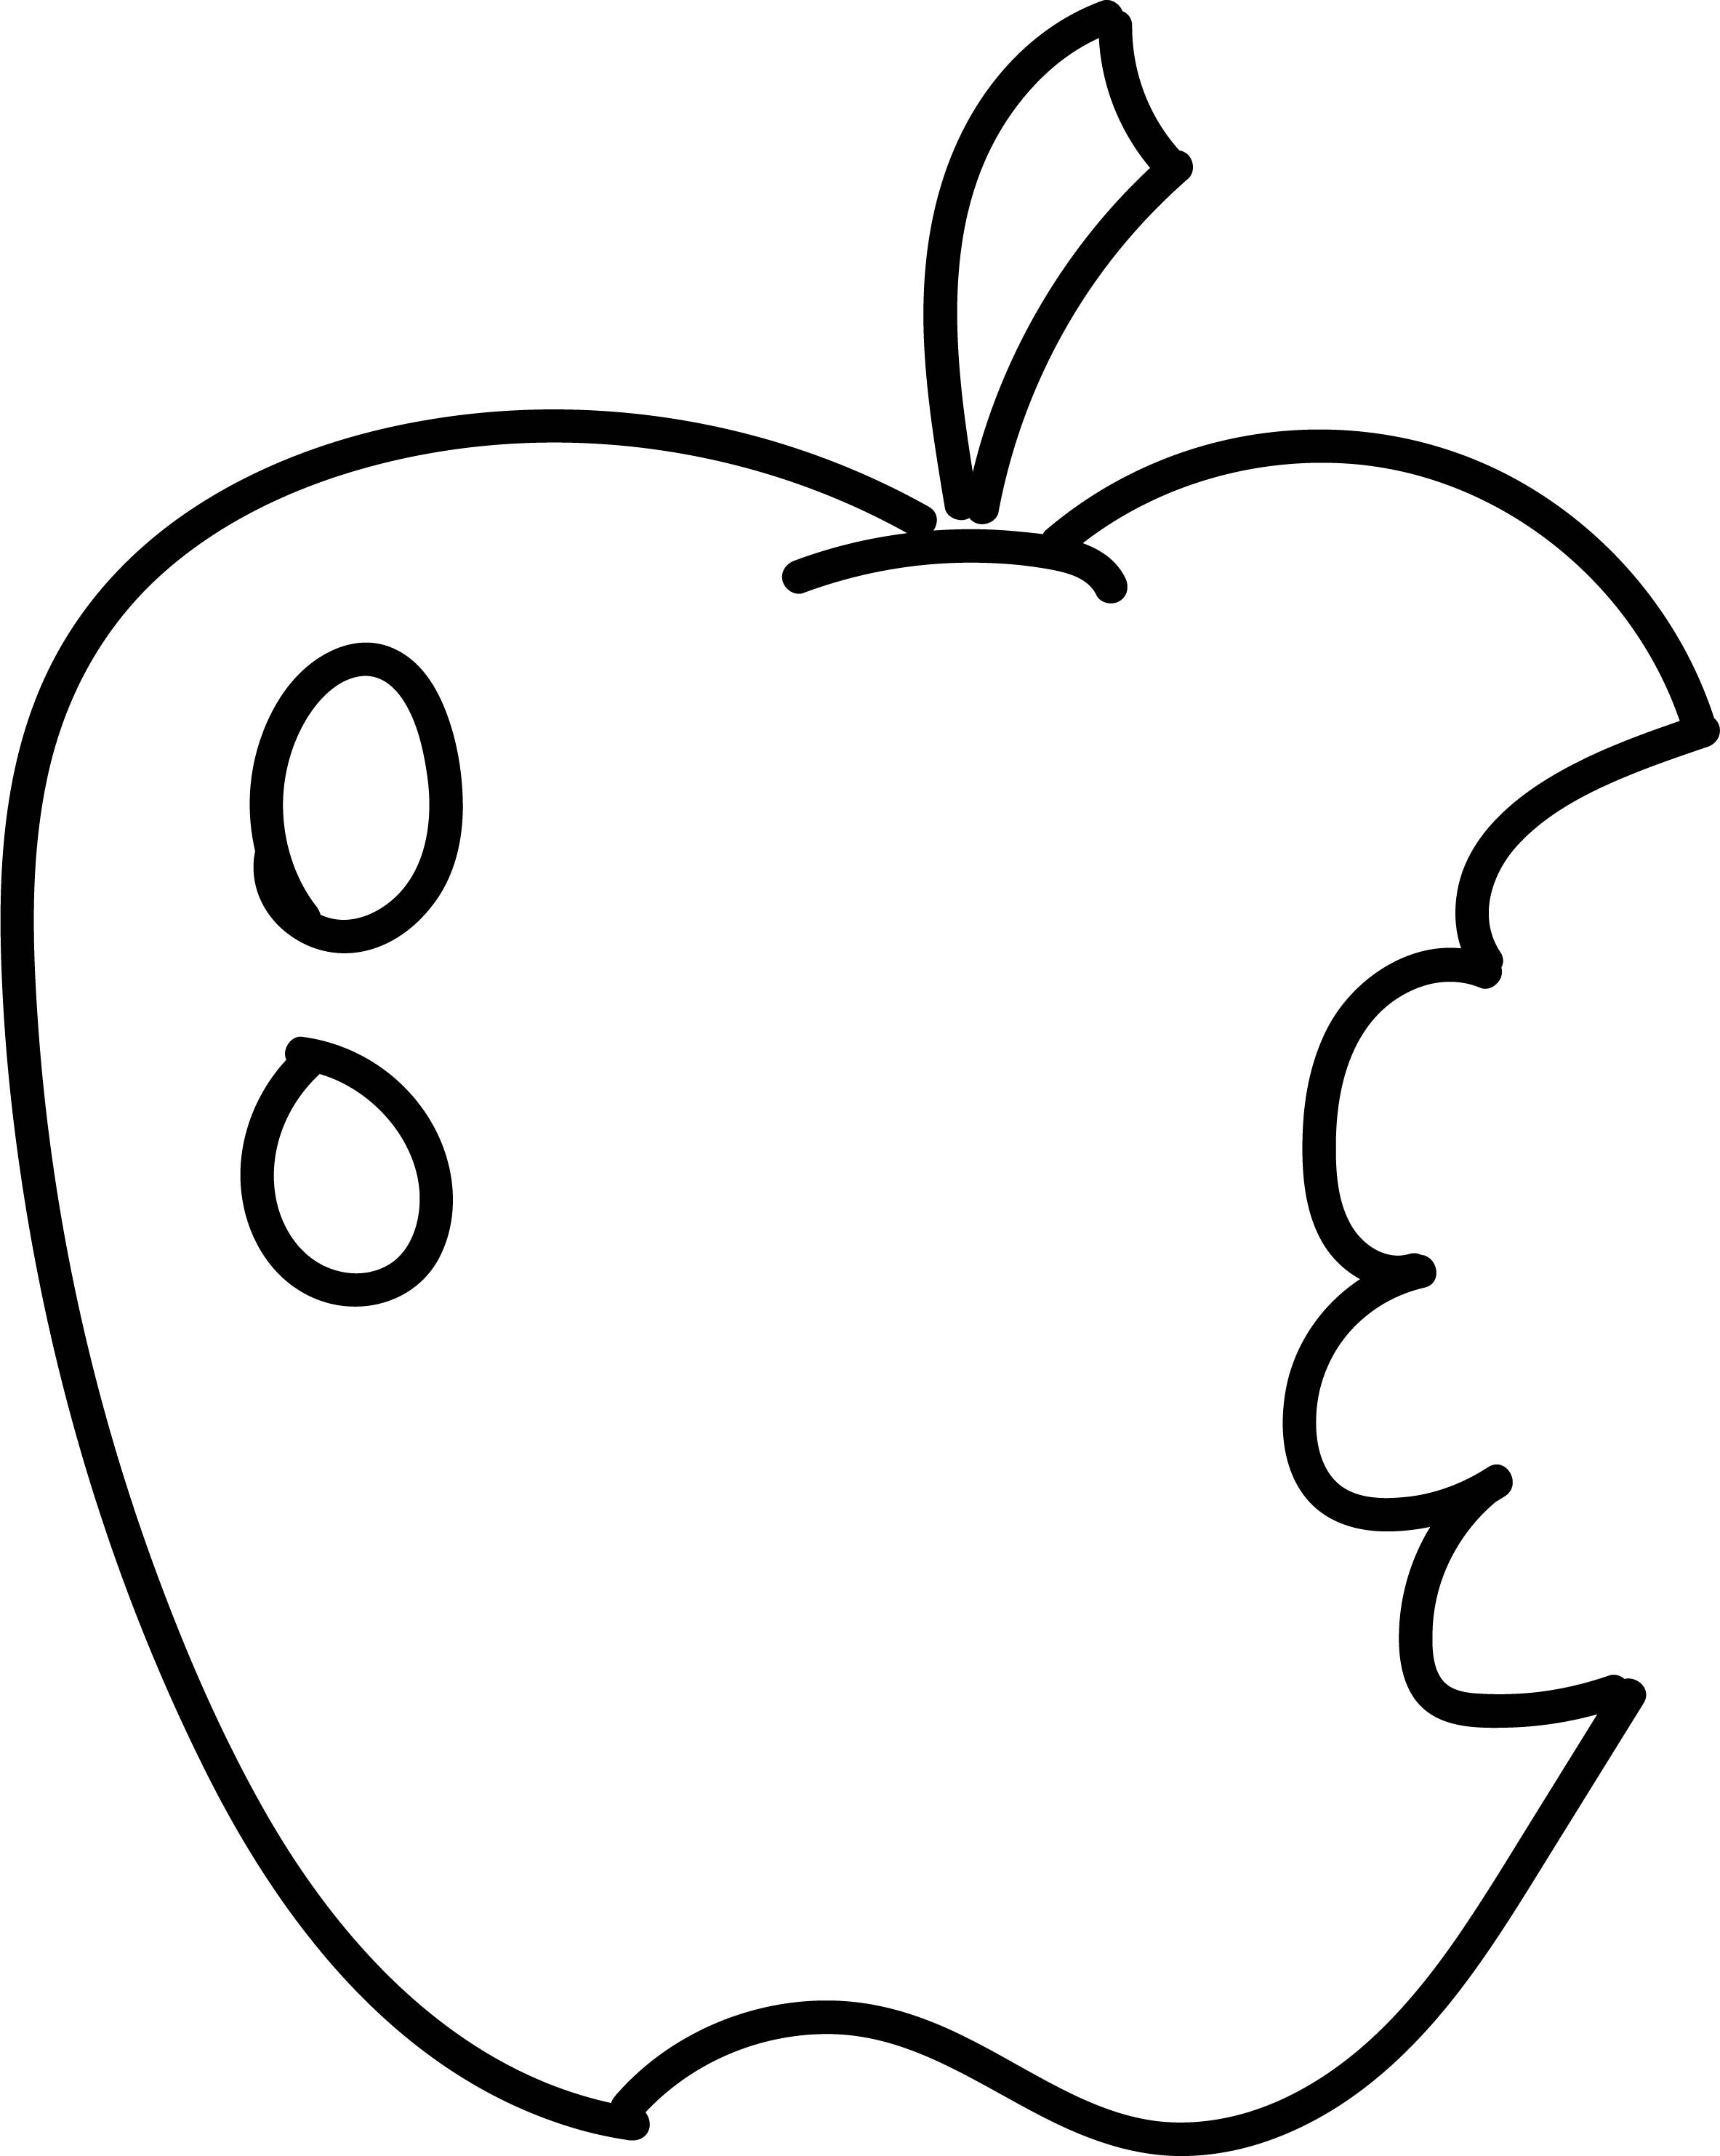 apple for coloring three tasty apples free coloring page to print coloring apple for